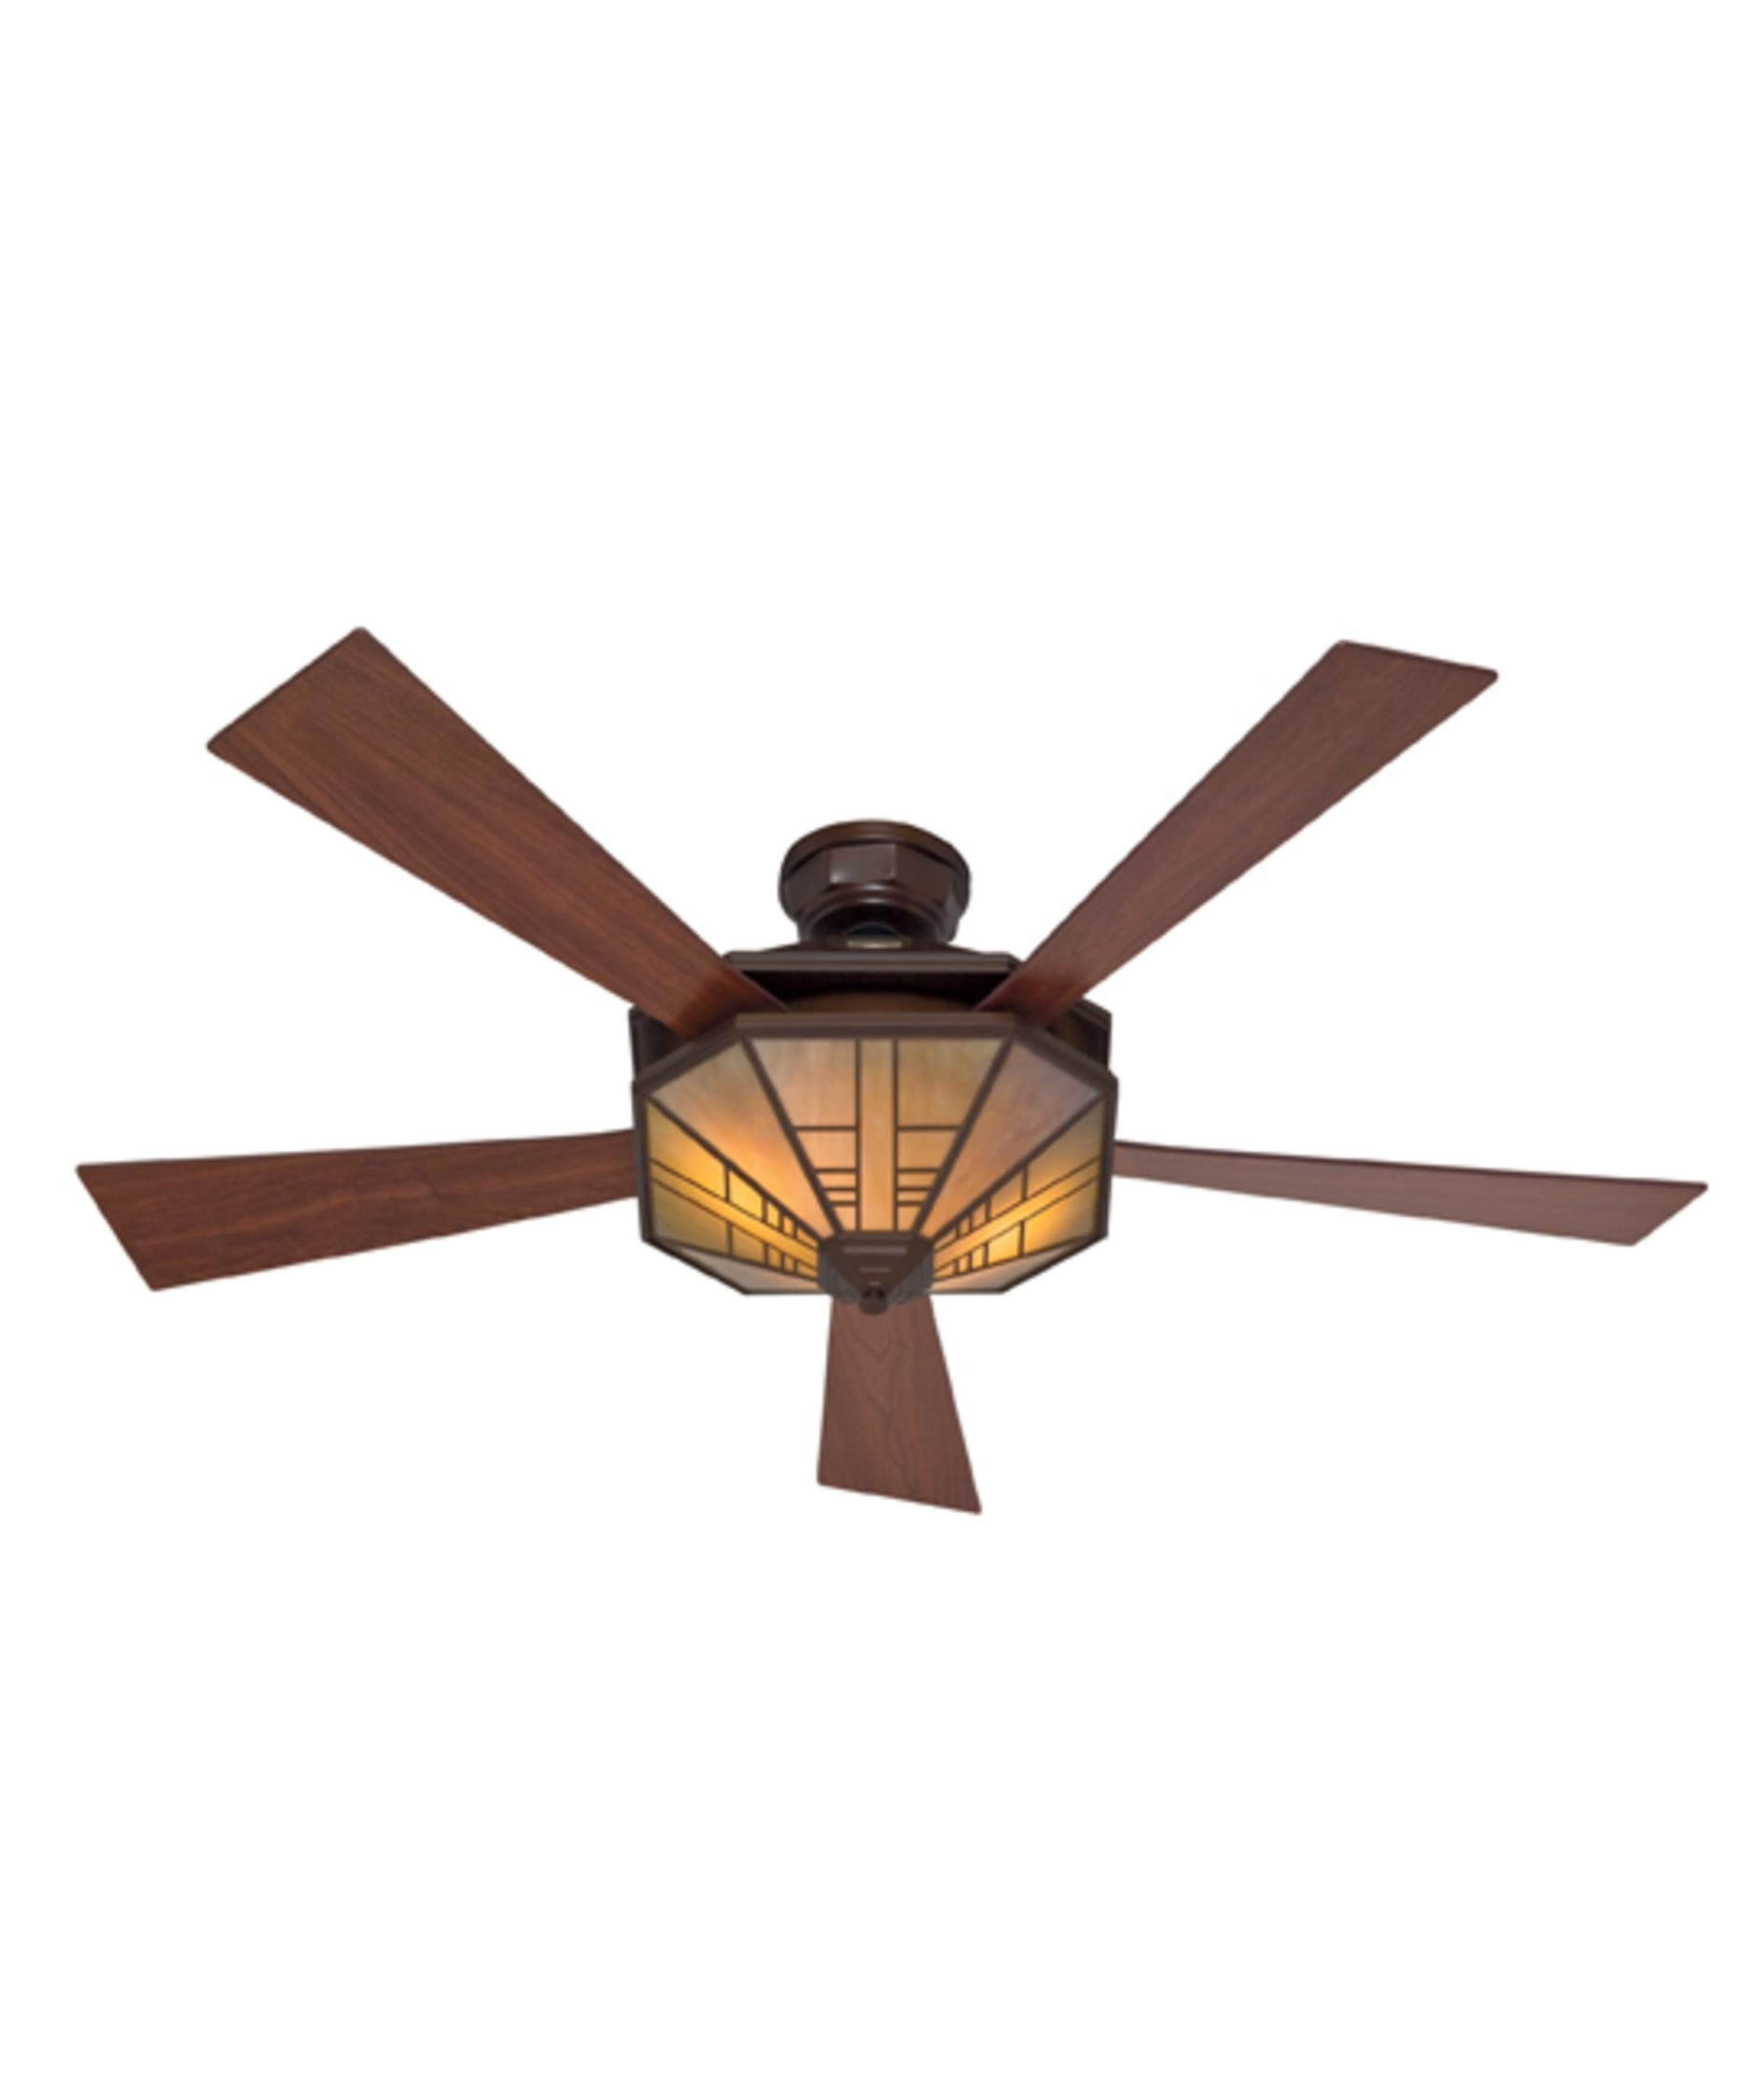 Mission Style Outdoor Ceiling Fans With Lights Intended For Most Up To Date Hunter Fan 21978 1912 Mission 54 Inch 5 Blade Ceiling Fan (Gallery 6 of 20)